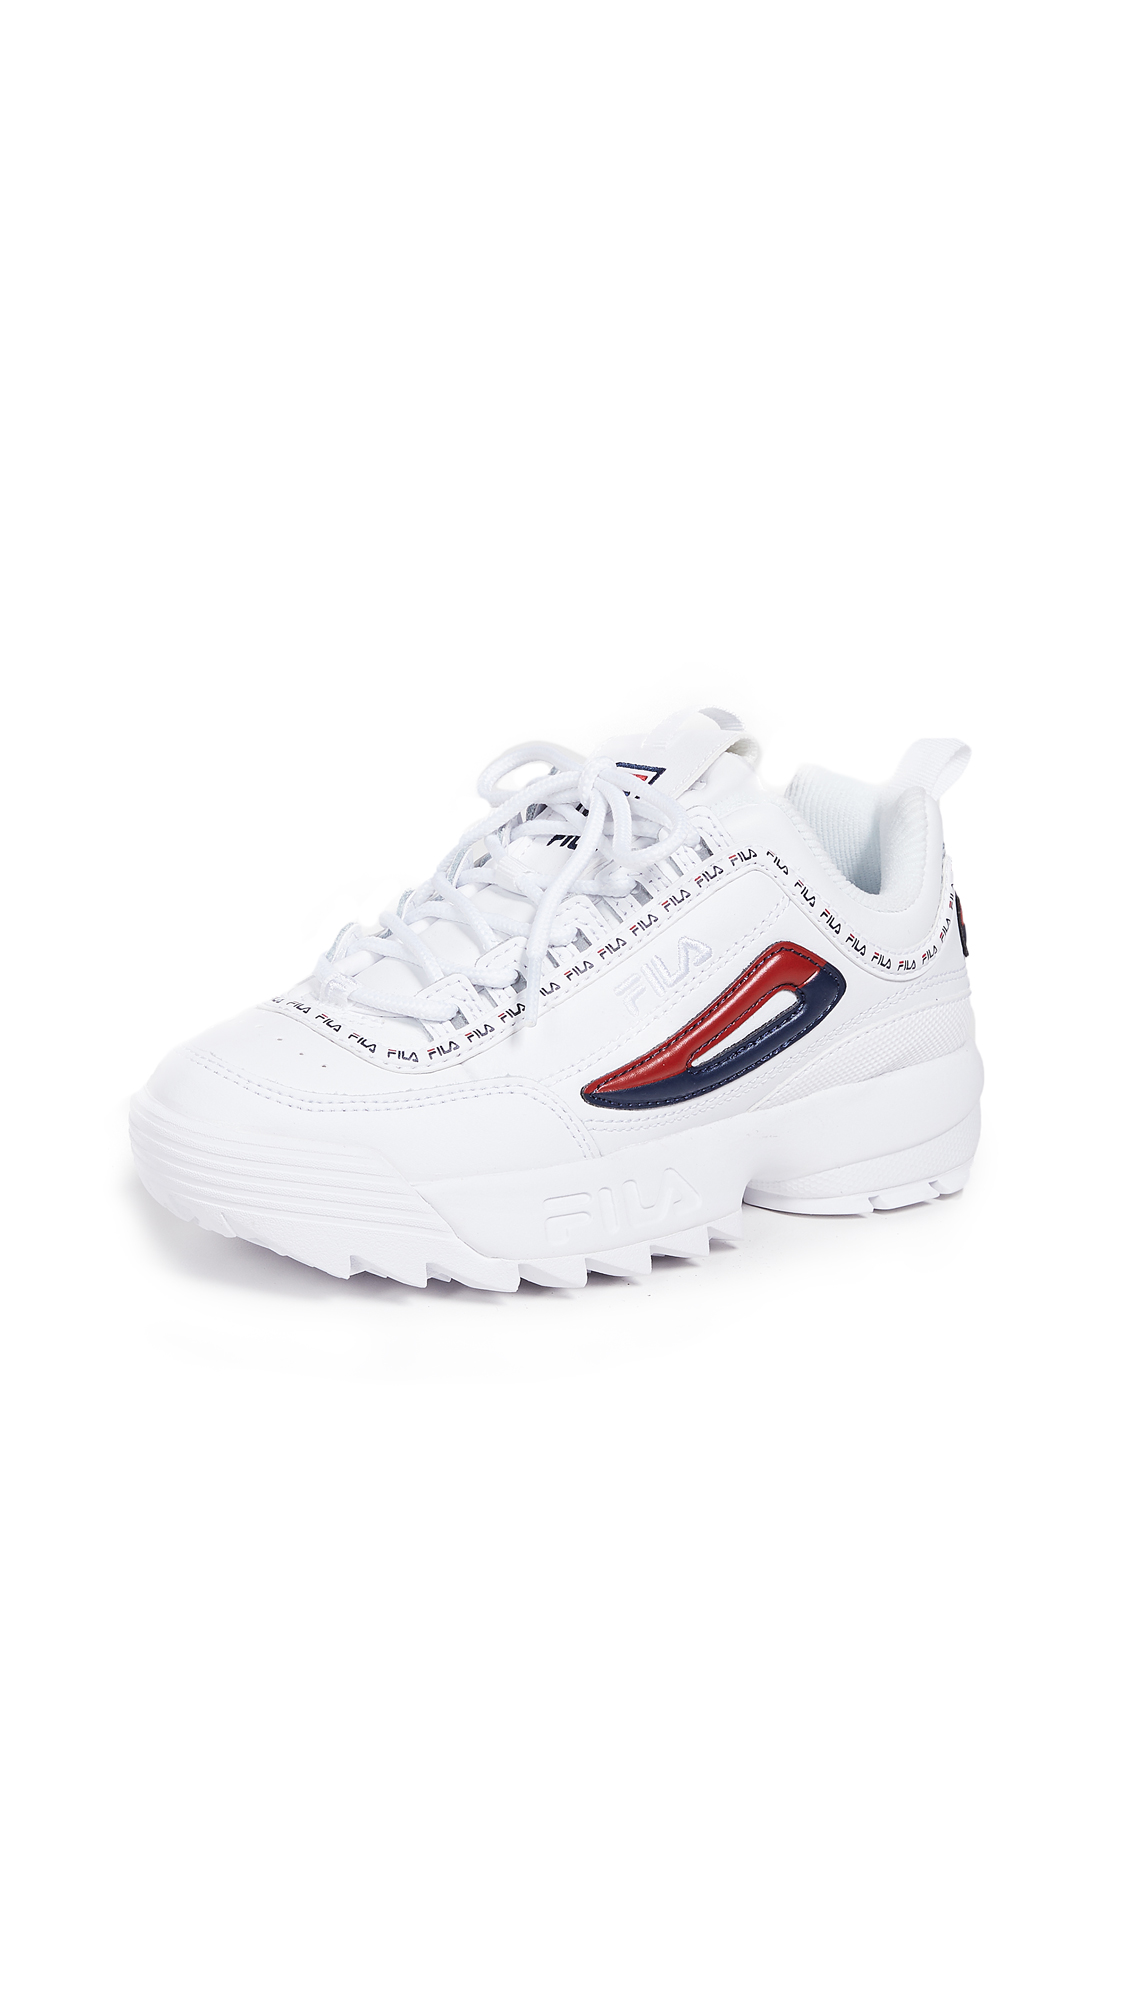 Fila Disruptor II Premium Repeat Sneakers - White/Fila Navy/Fila Red